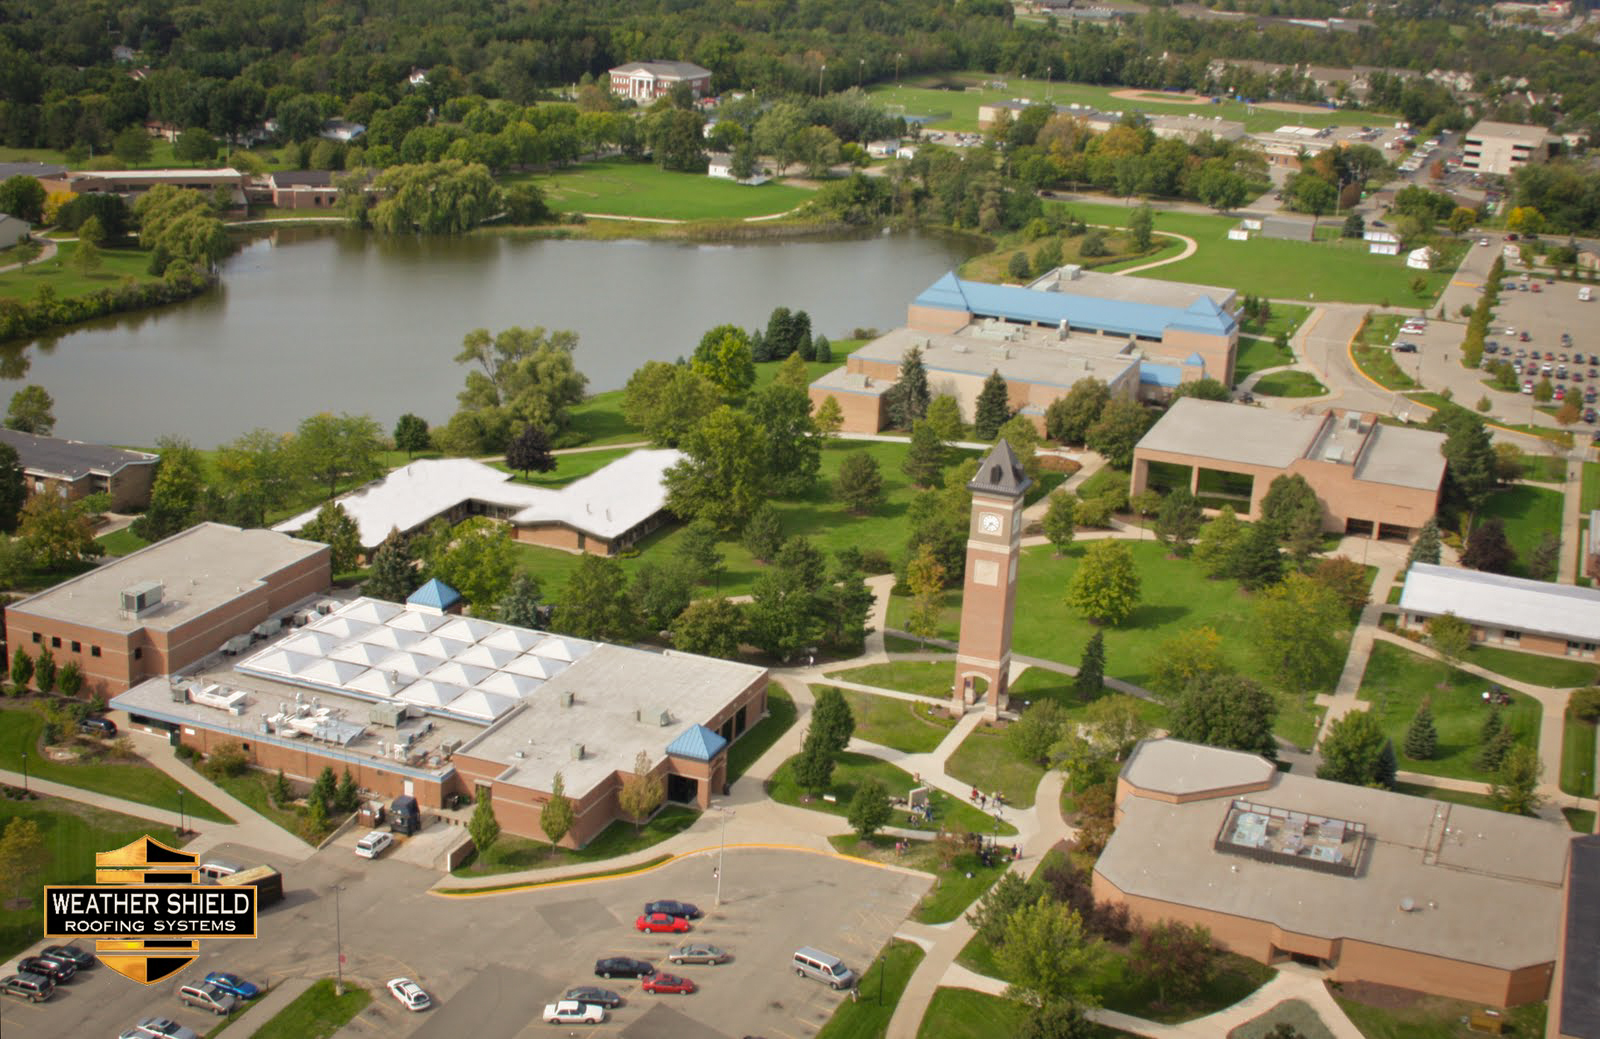 PHOTO CREDIT: Above image is an aerial view of Cornerstone University   via  Google .